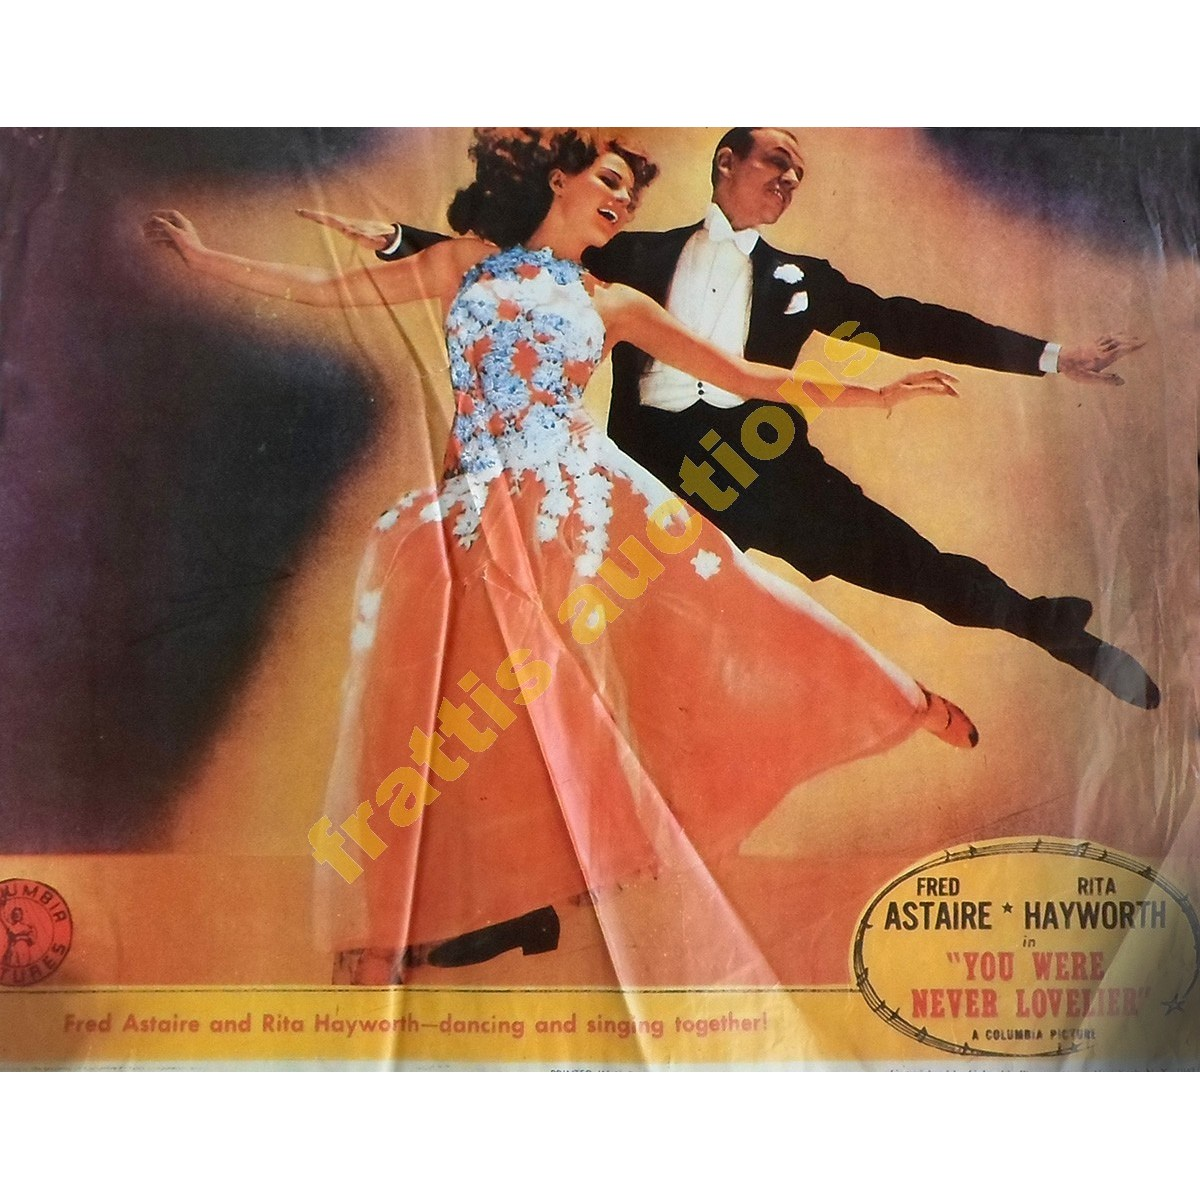 Fred Astaire and Rita Ηayworth, poster.